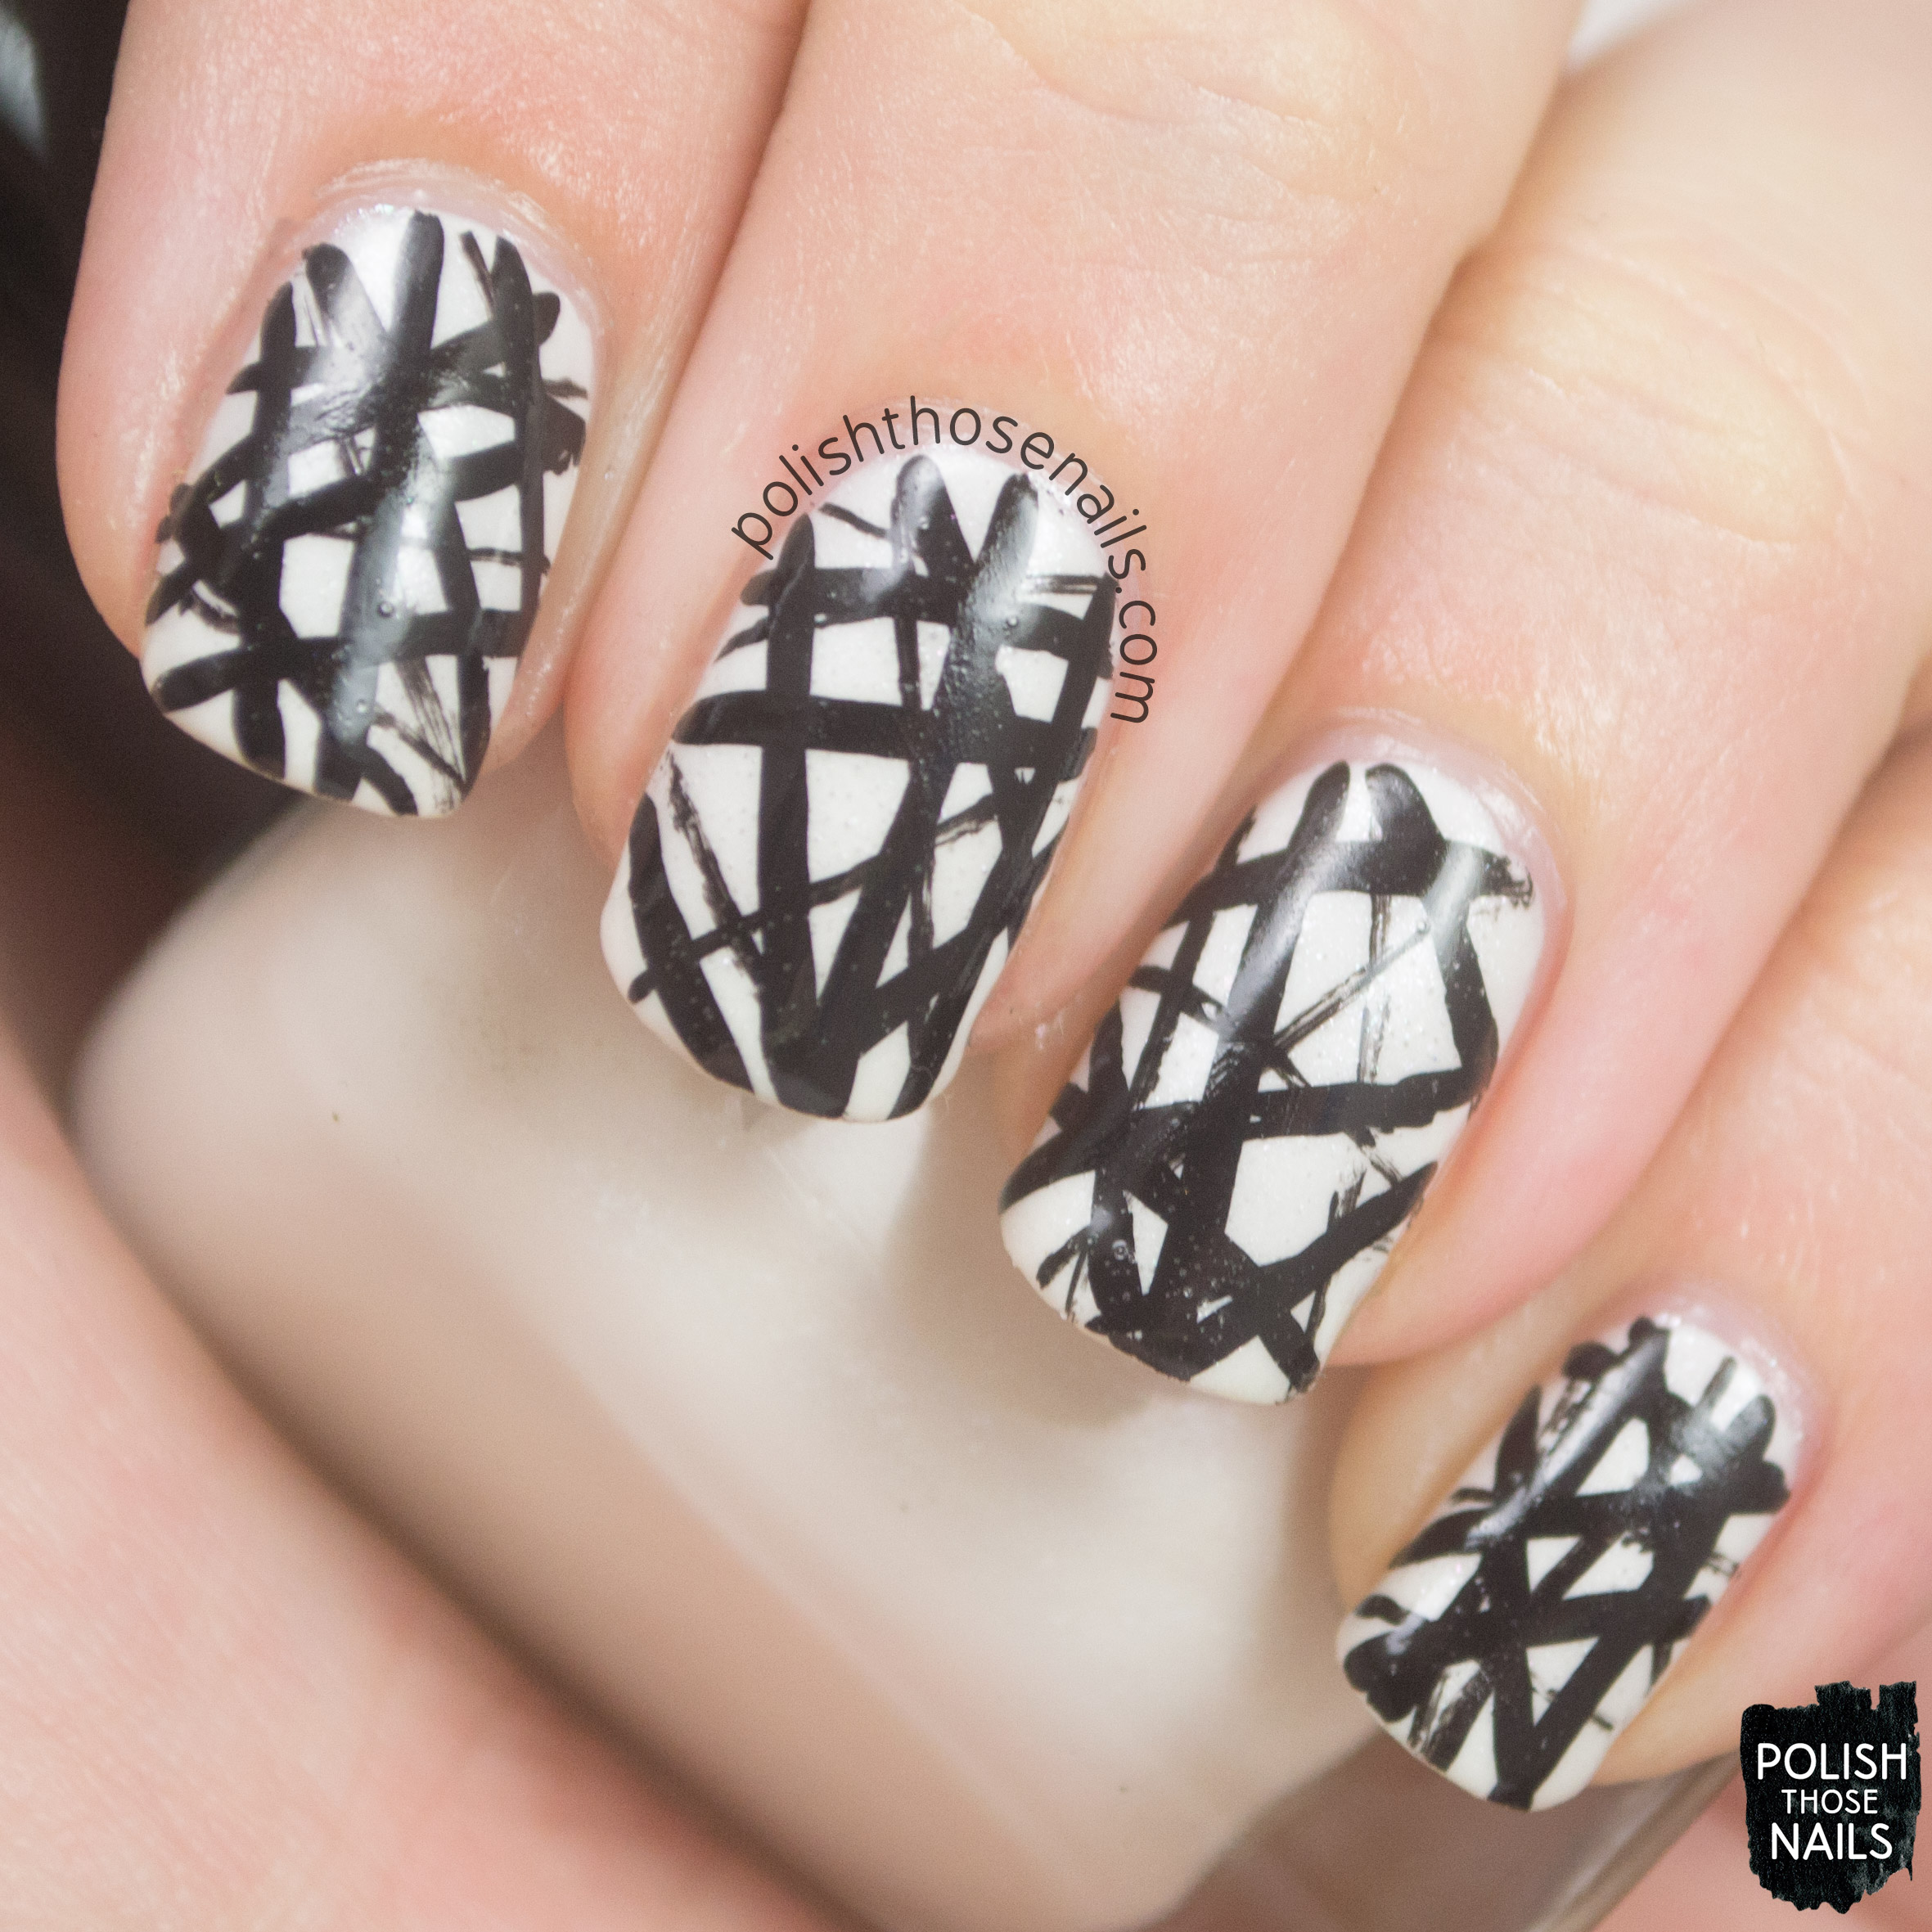 Concrete And Nail Polish Striped Nail Art: Black & White • Polish Those Nails